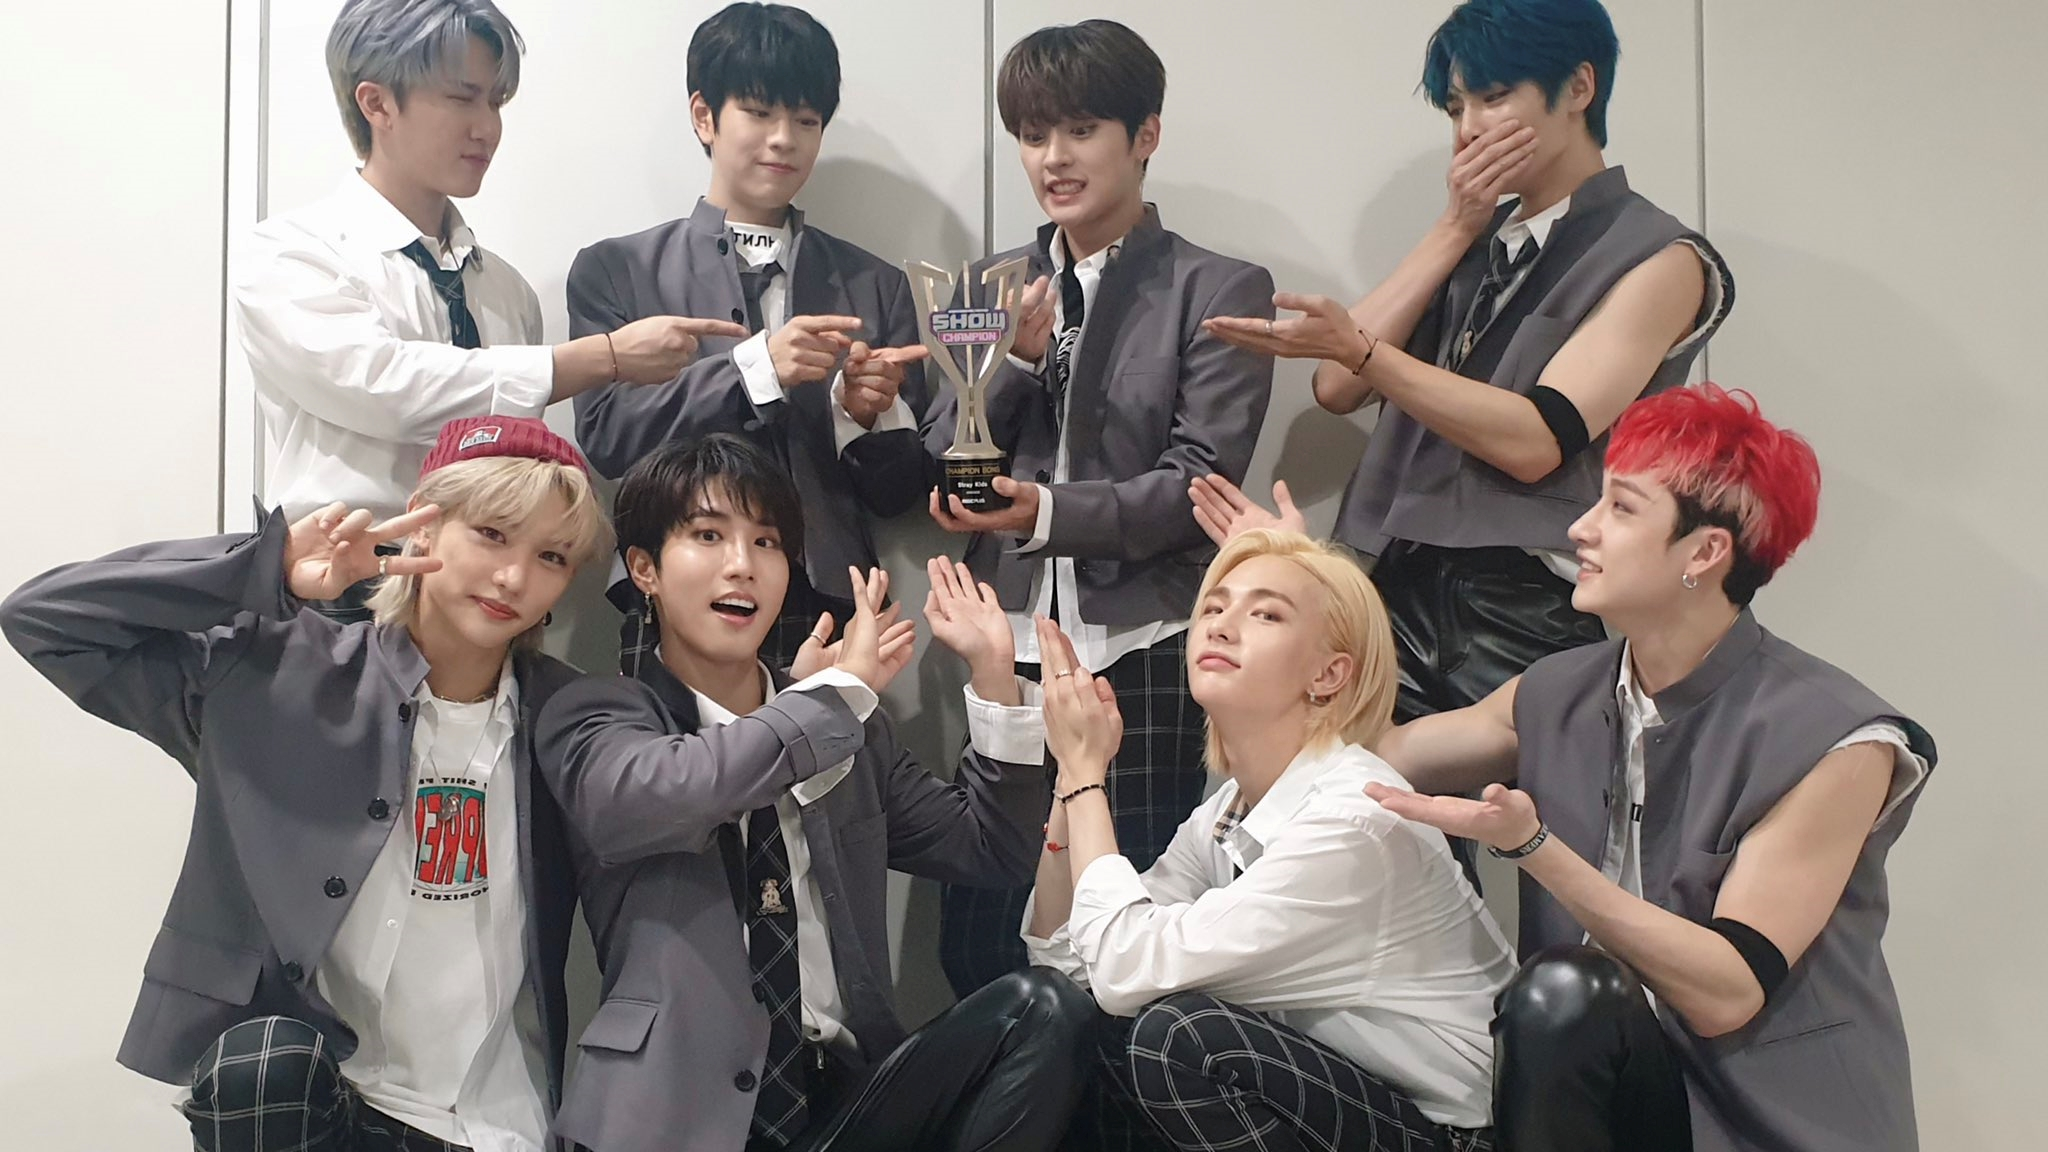 Stray Kids Takes Home the 1st Trophy for The Song 'Back Door', Congratulations!